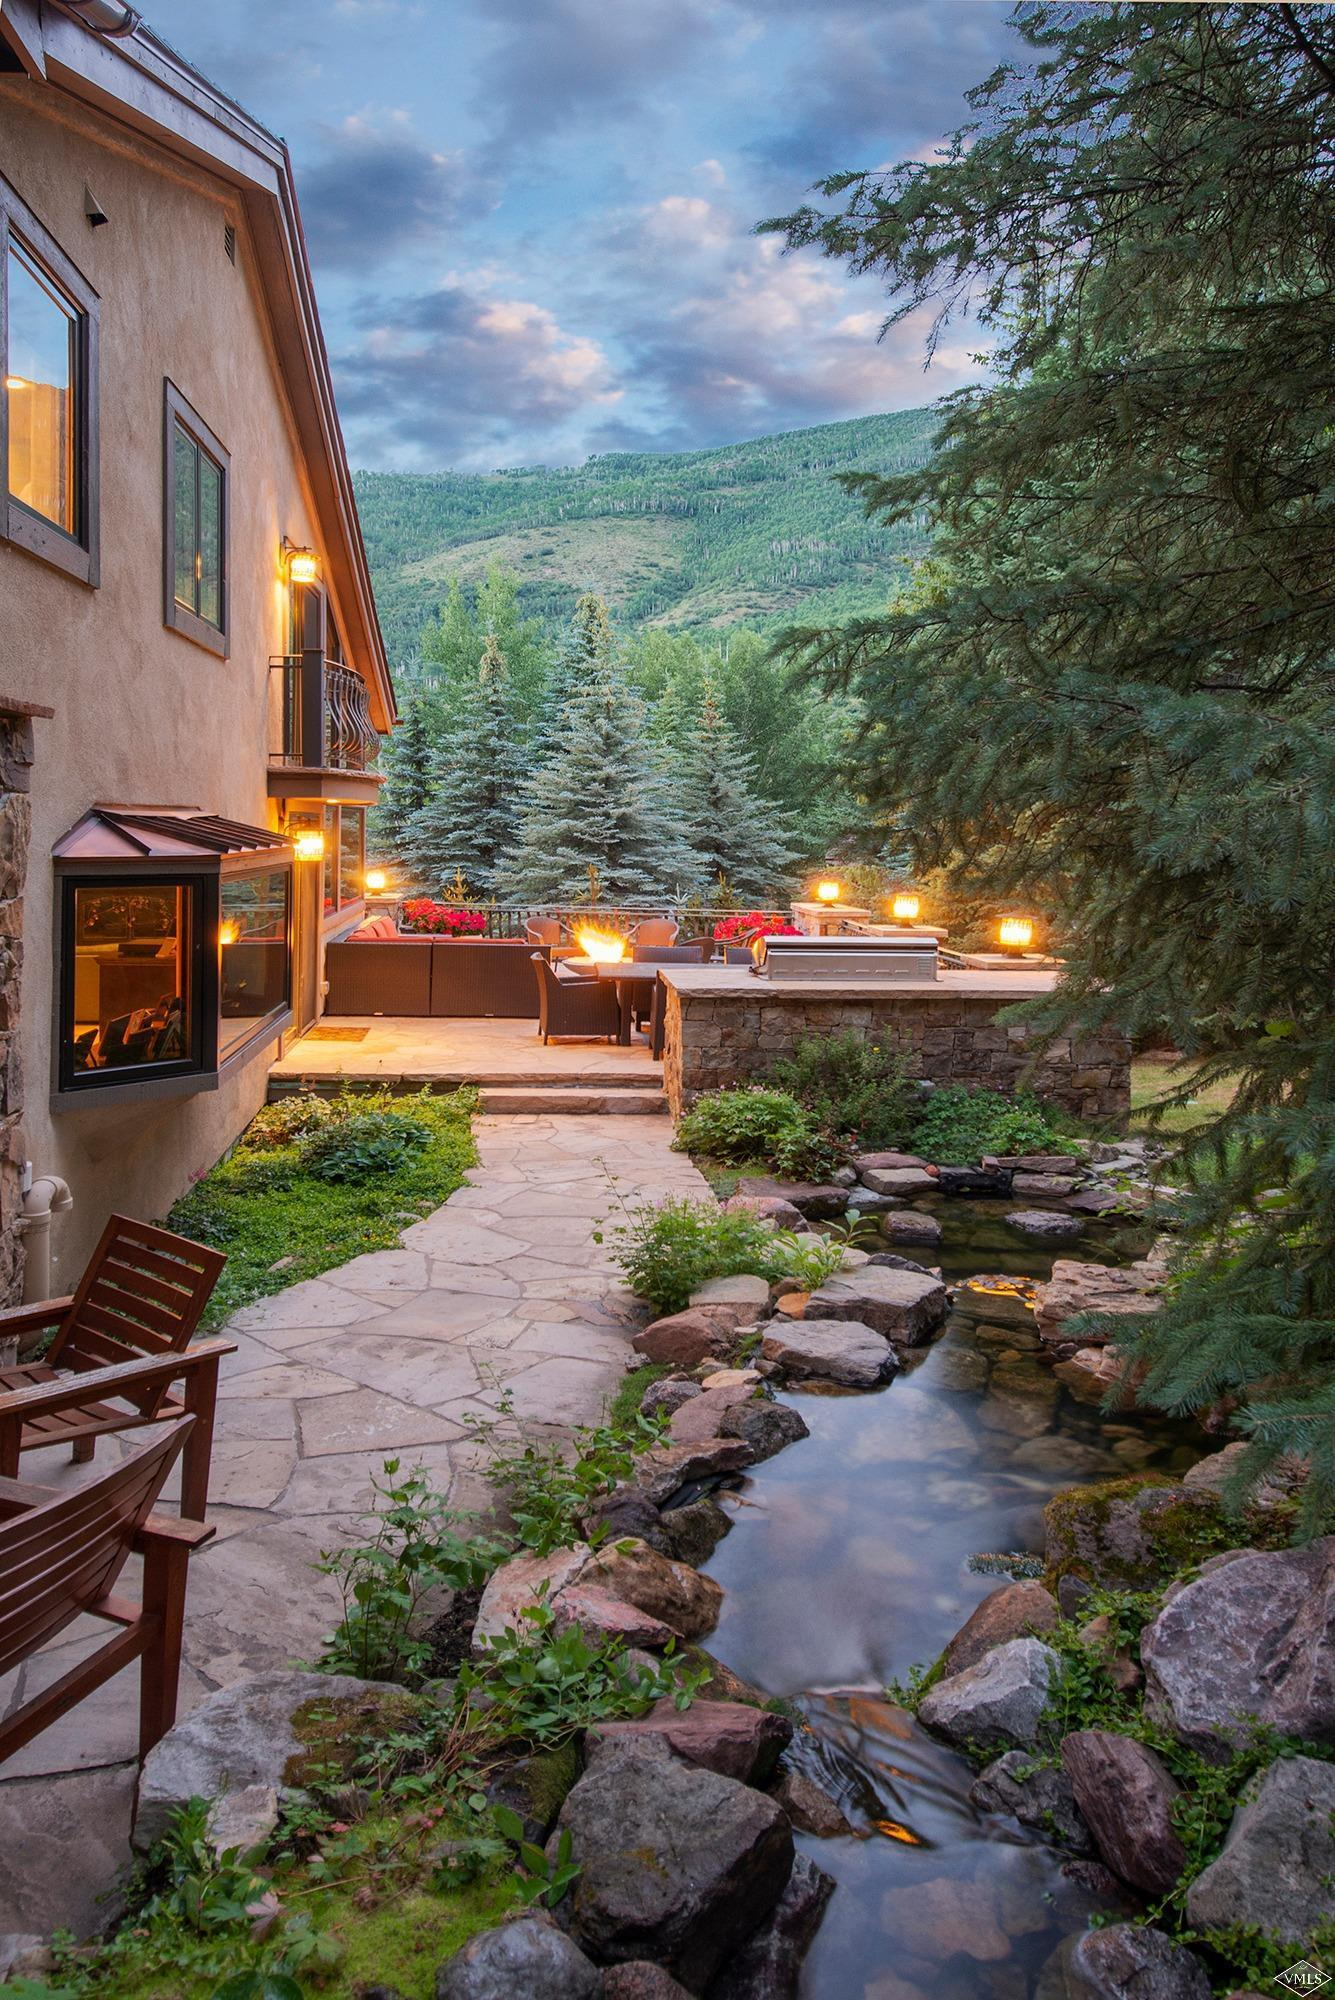 Proprty image for 1468 Vail Valley Drive